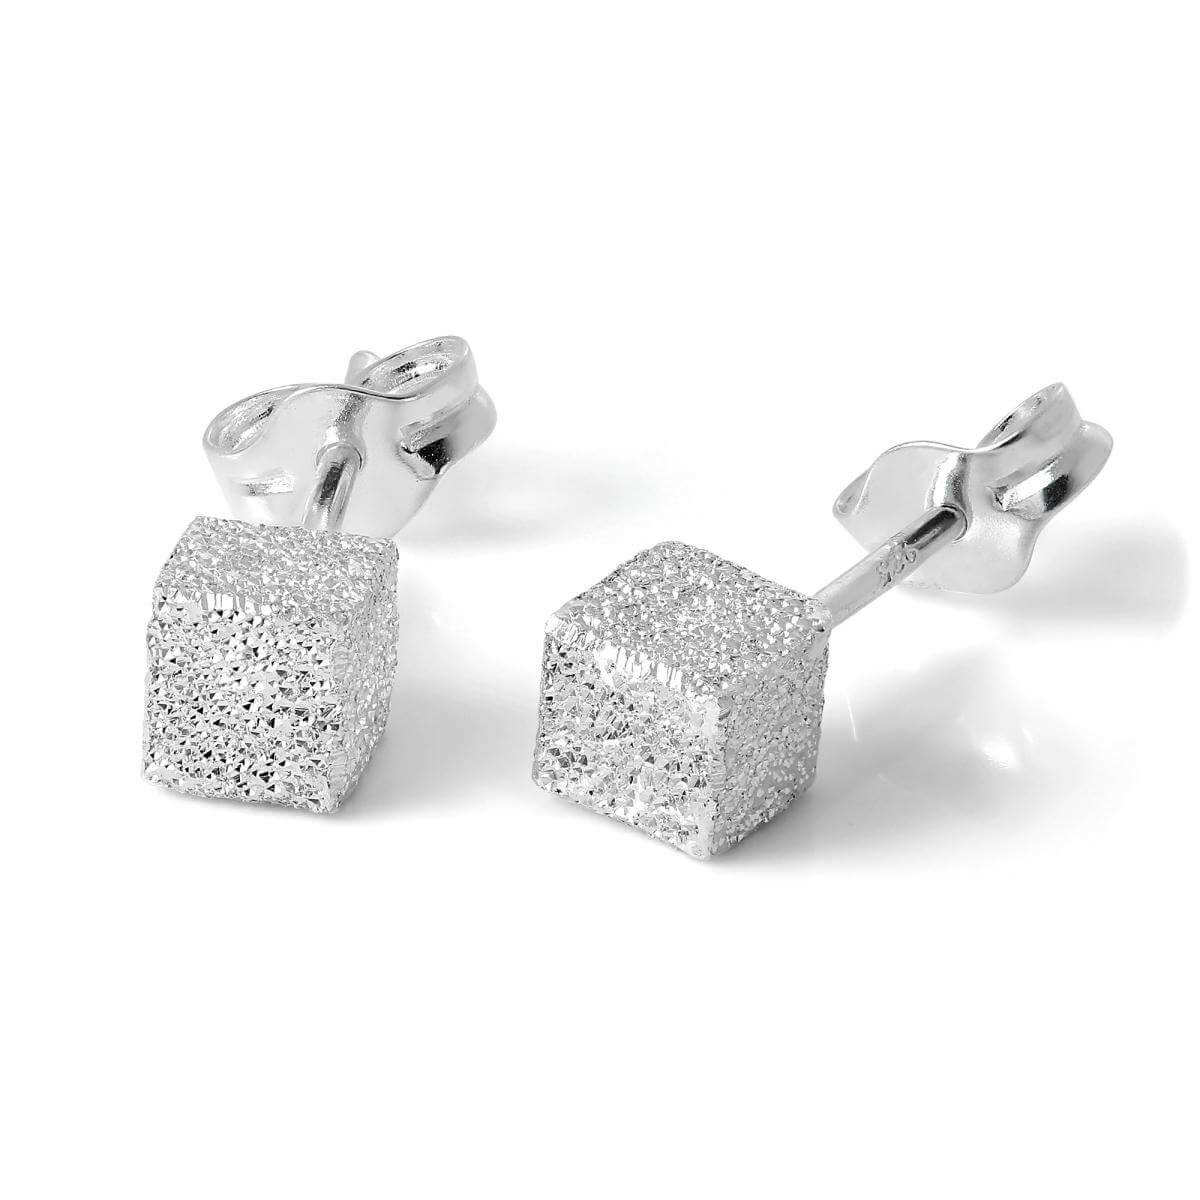 Frosted Sterling Silver 4mm Cube Stud Earrings